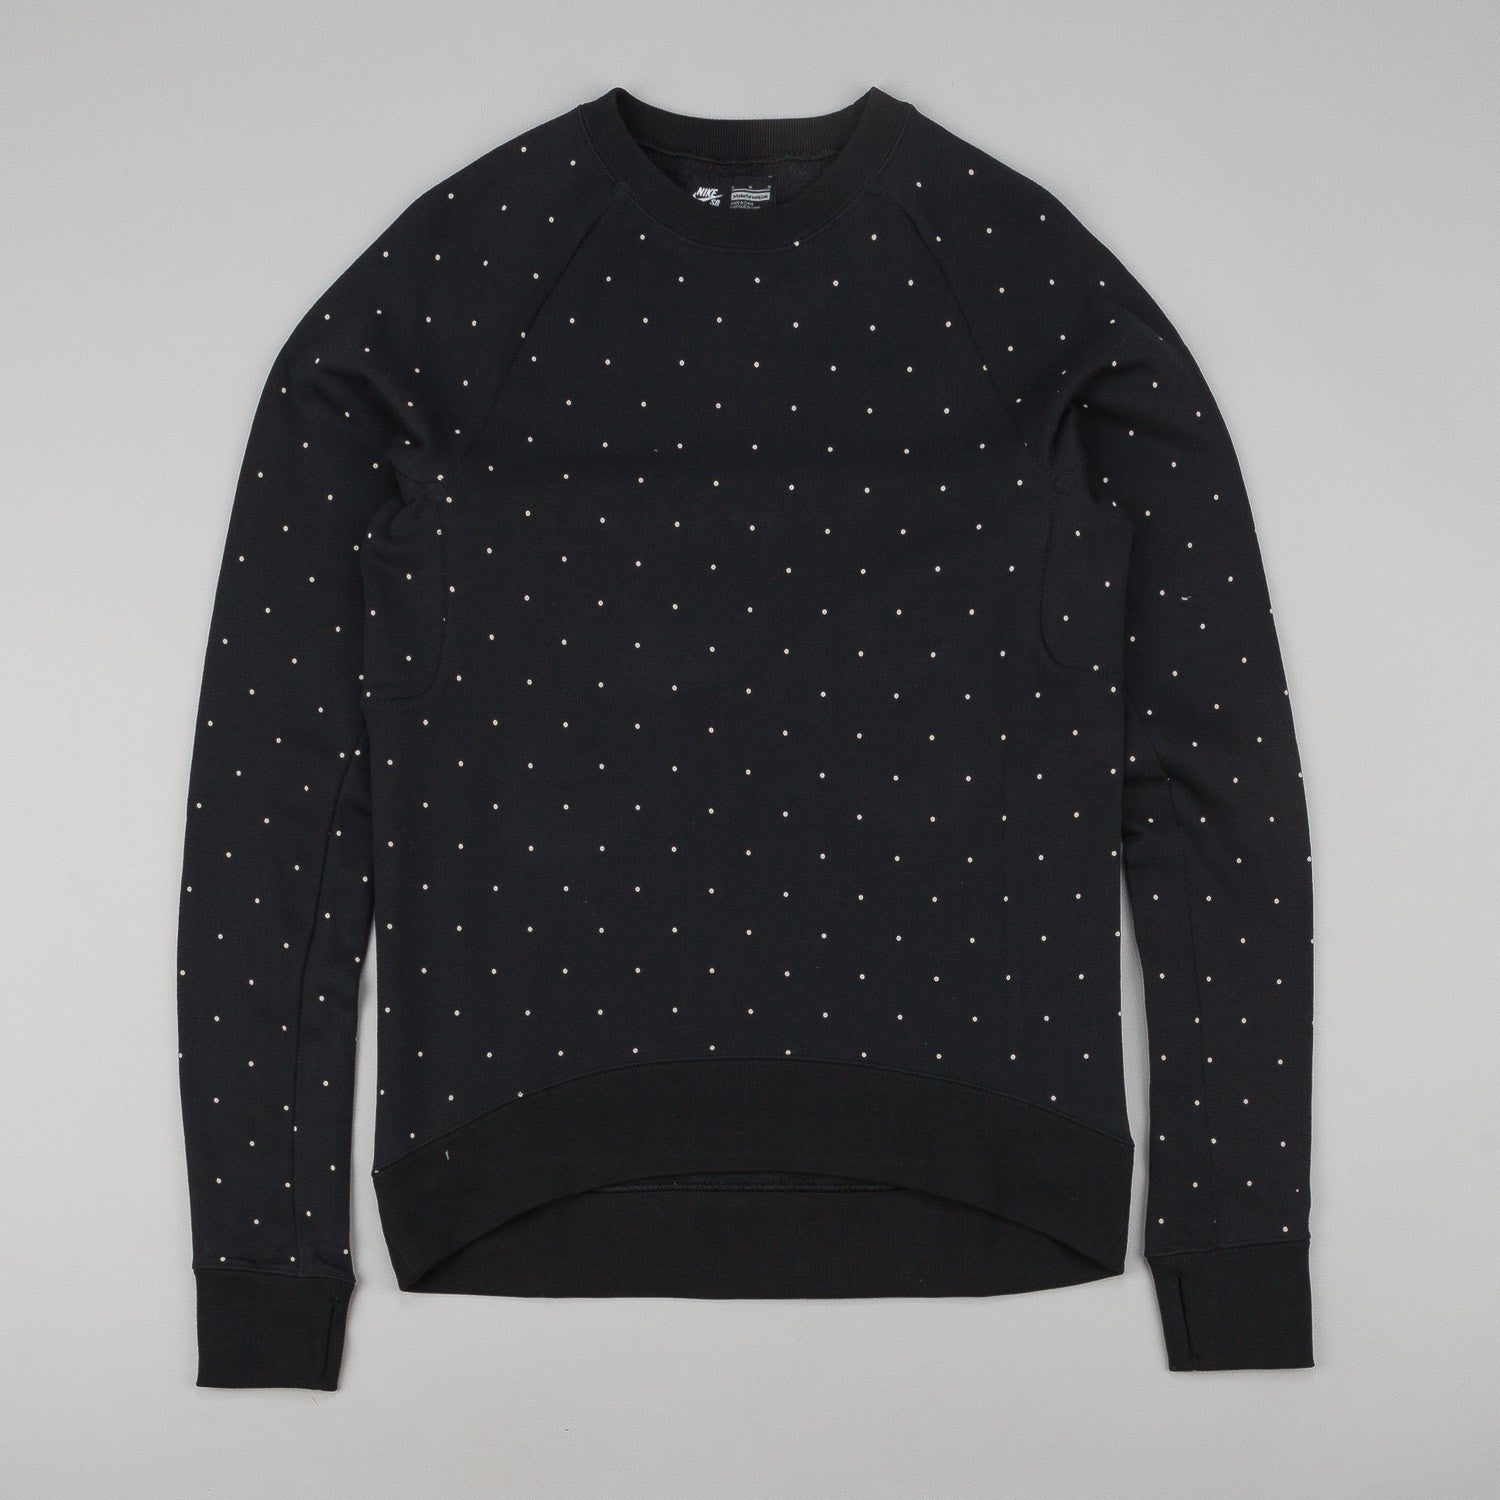 Nike SB Everett Polka Dot Crew Neck Sweatshirt